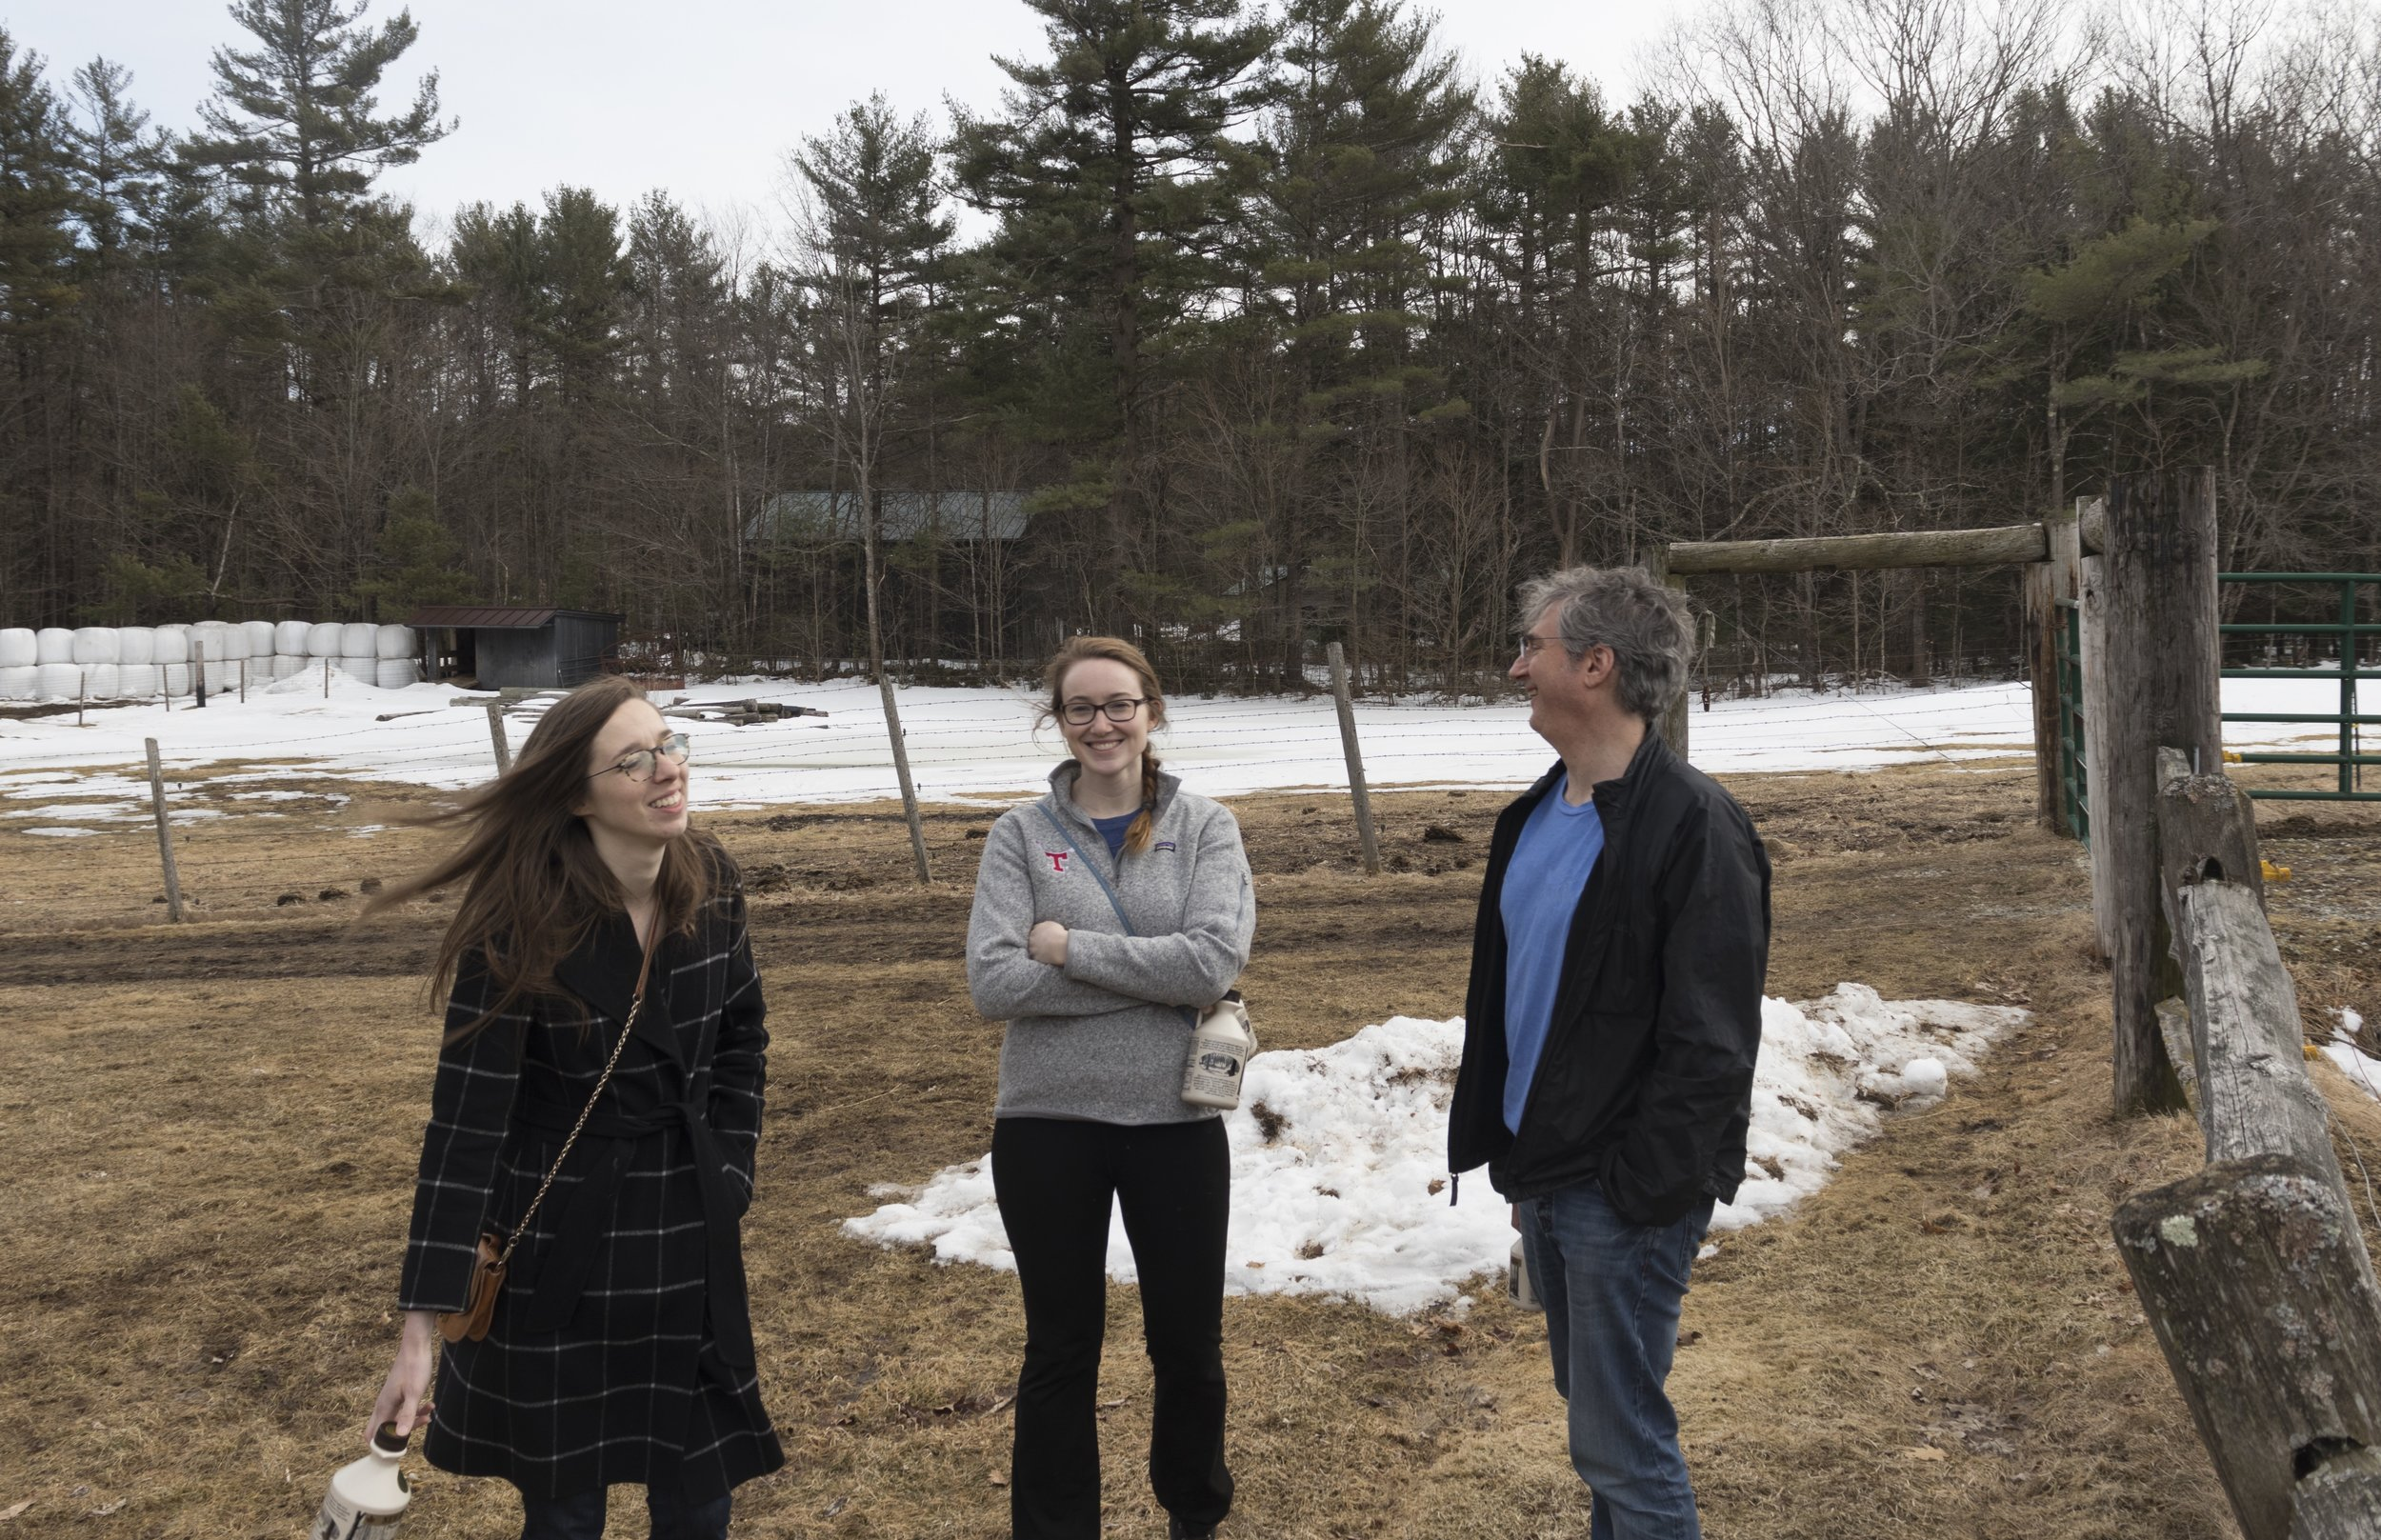 Maple Month - March is New Hampshire Maple Month. On Saturday, March 23, members of the Kahne lab braved the chilly temperatures and headed to New Hampshire for the annual Maple Weekend. They visited several different sugar houses, stopped at a few petting farms, and brought home authentic New Hampshire maple syrup. Yum!You can read more about the 2019 Maple Weekend here.